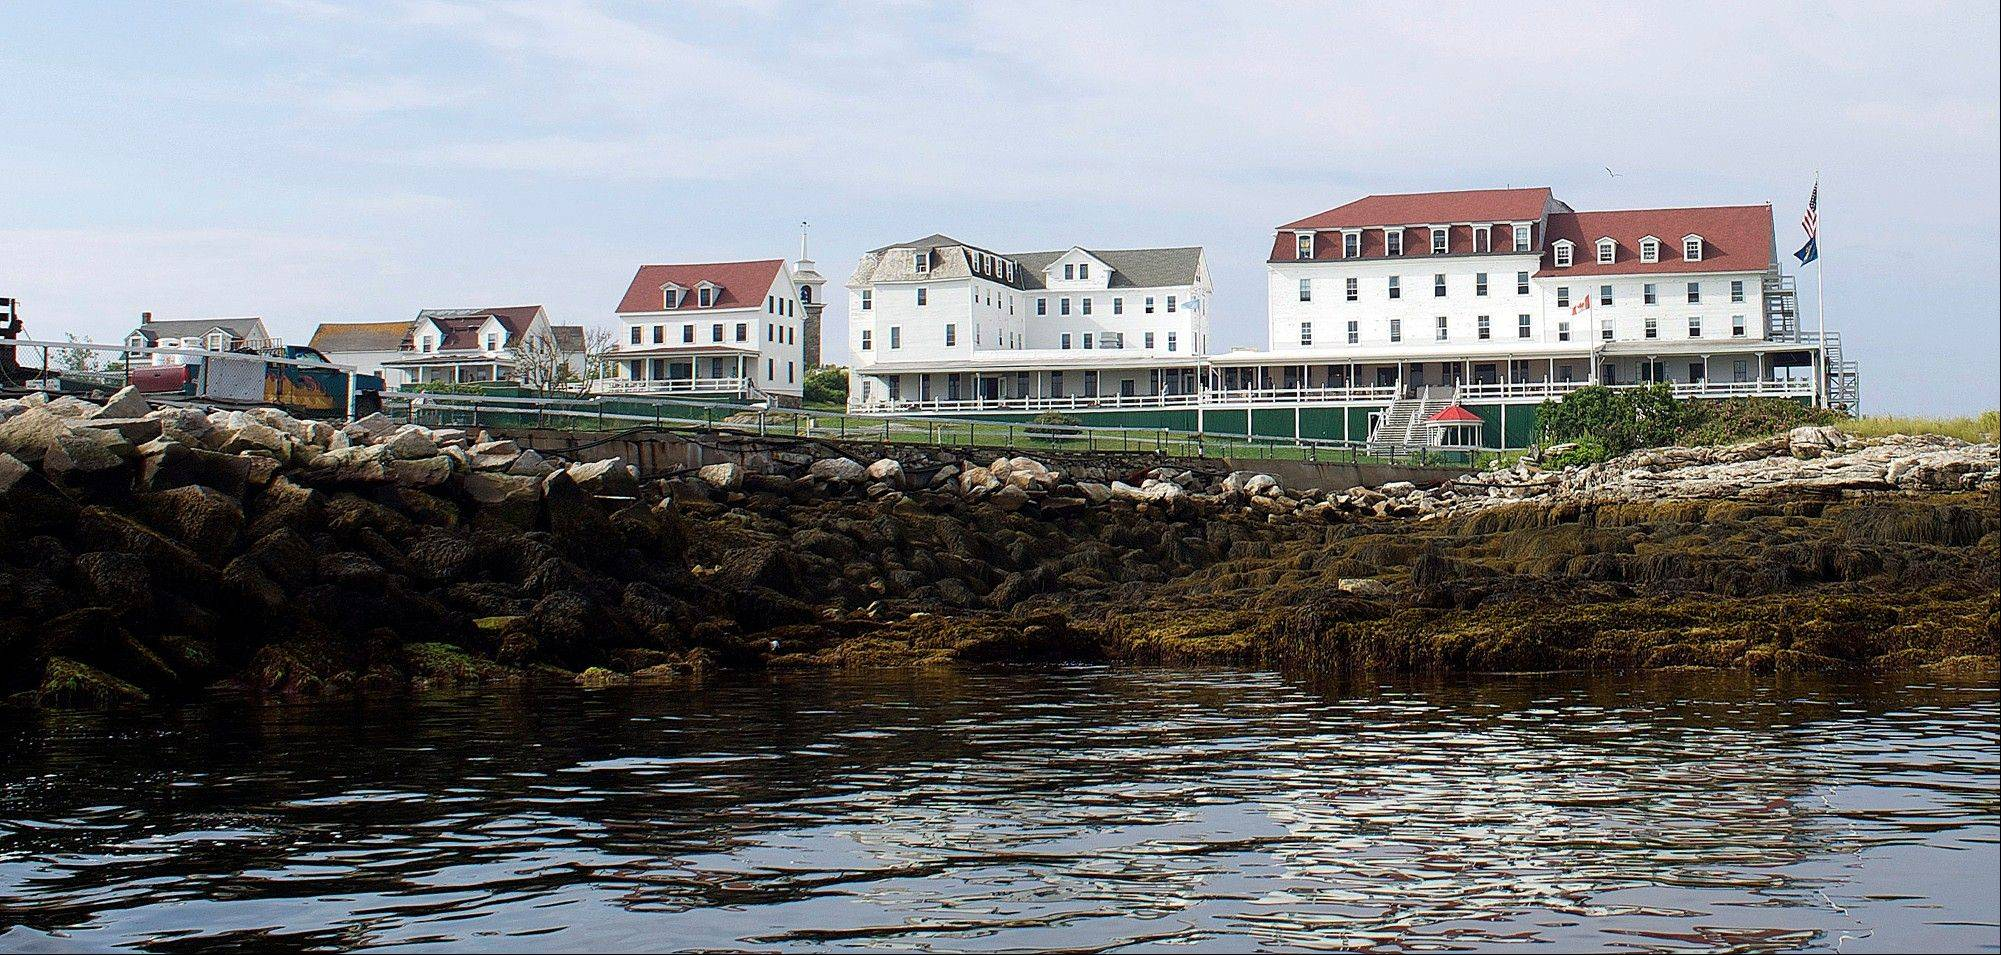 Buildings including the hotel, far right, are seen on Star Island off the New Hampshire coast in Rye, N.H.